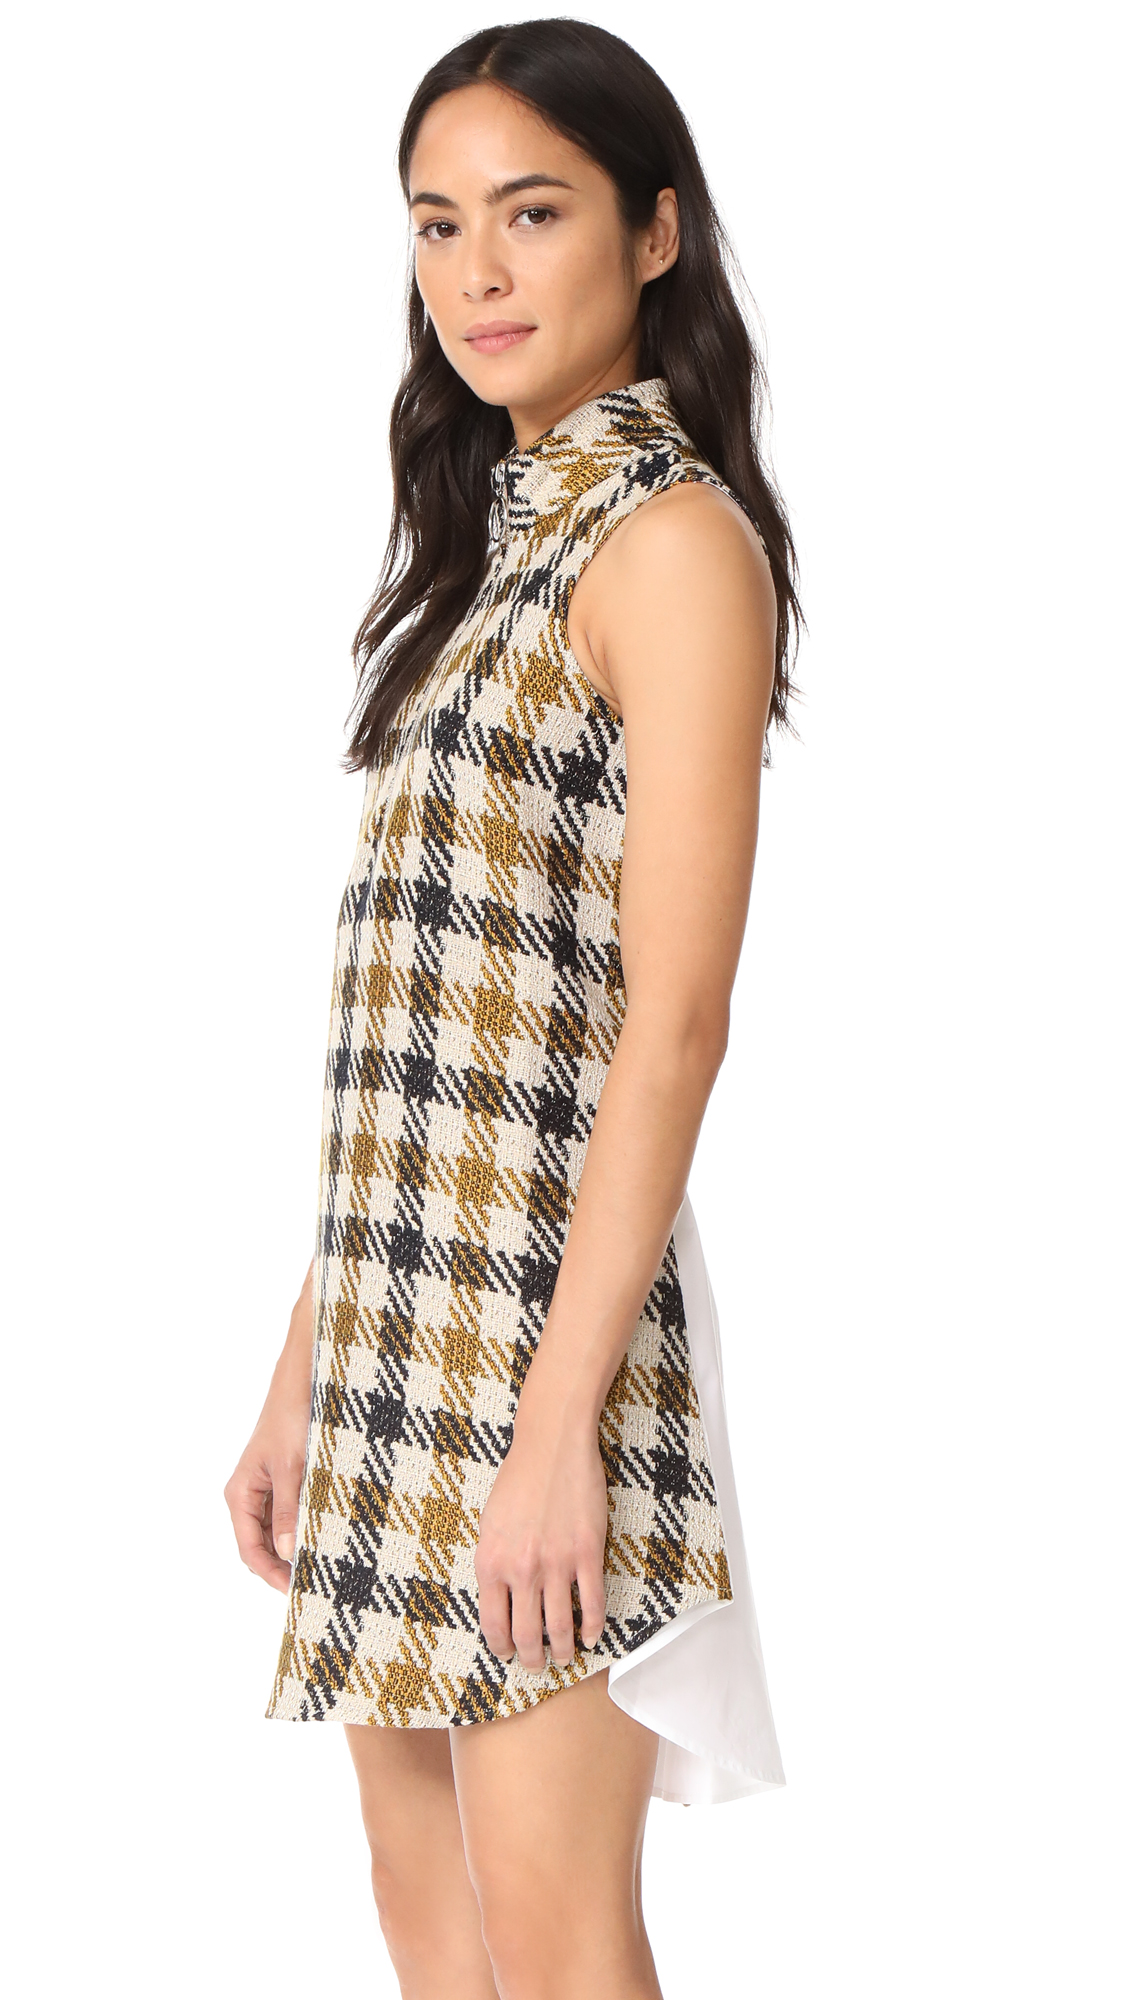 Sea Combo Twiggy Dress - Cream/Black/Yellow Check Multi